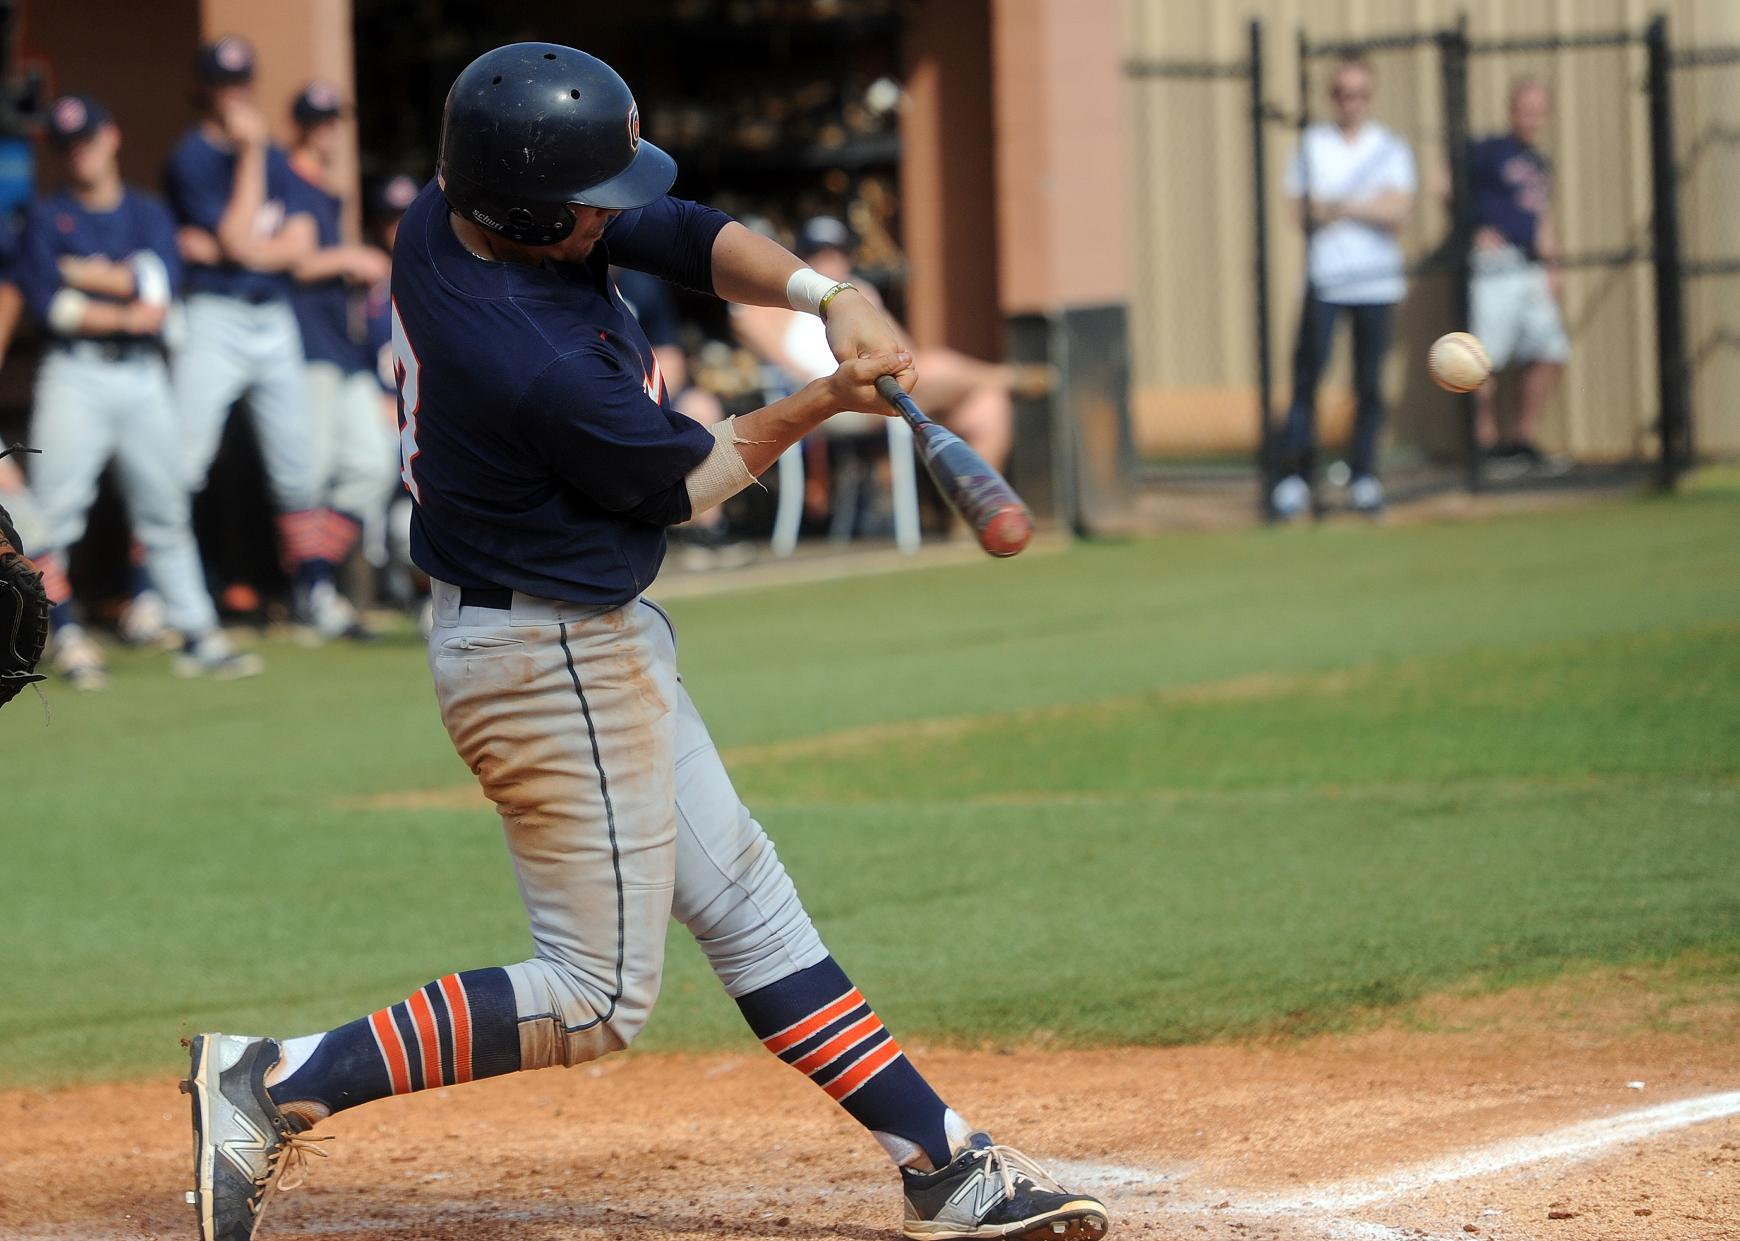 Wingate seizes game one at home versus Eagles